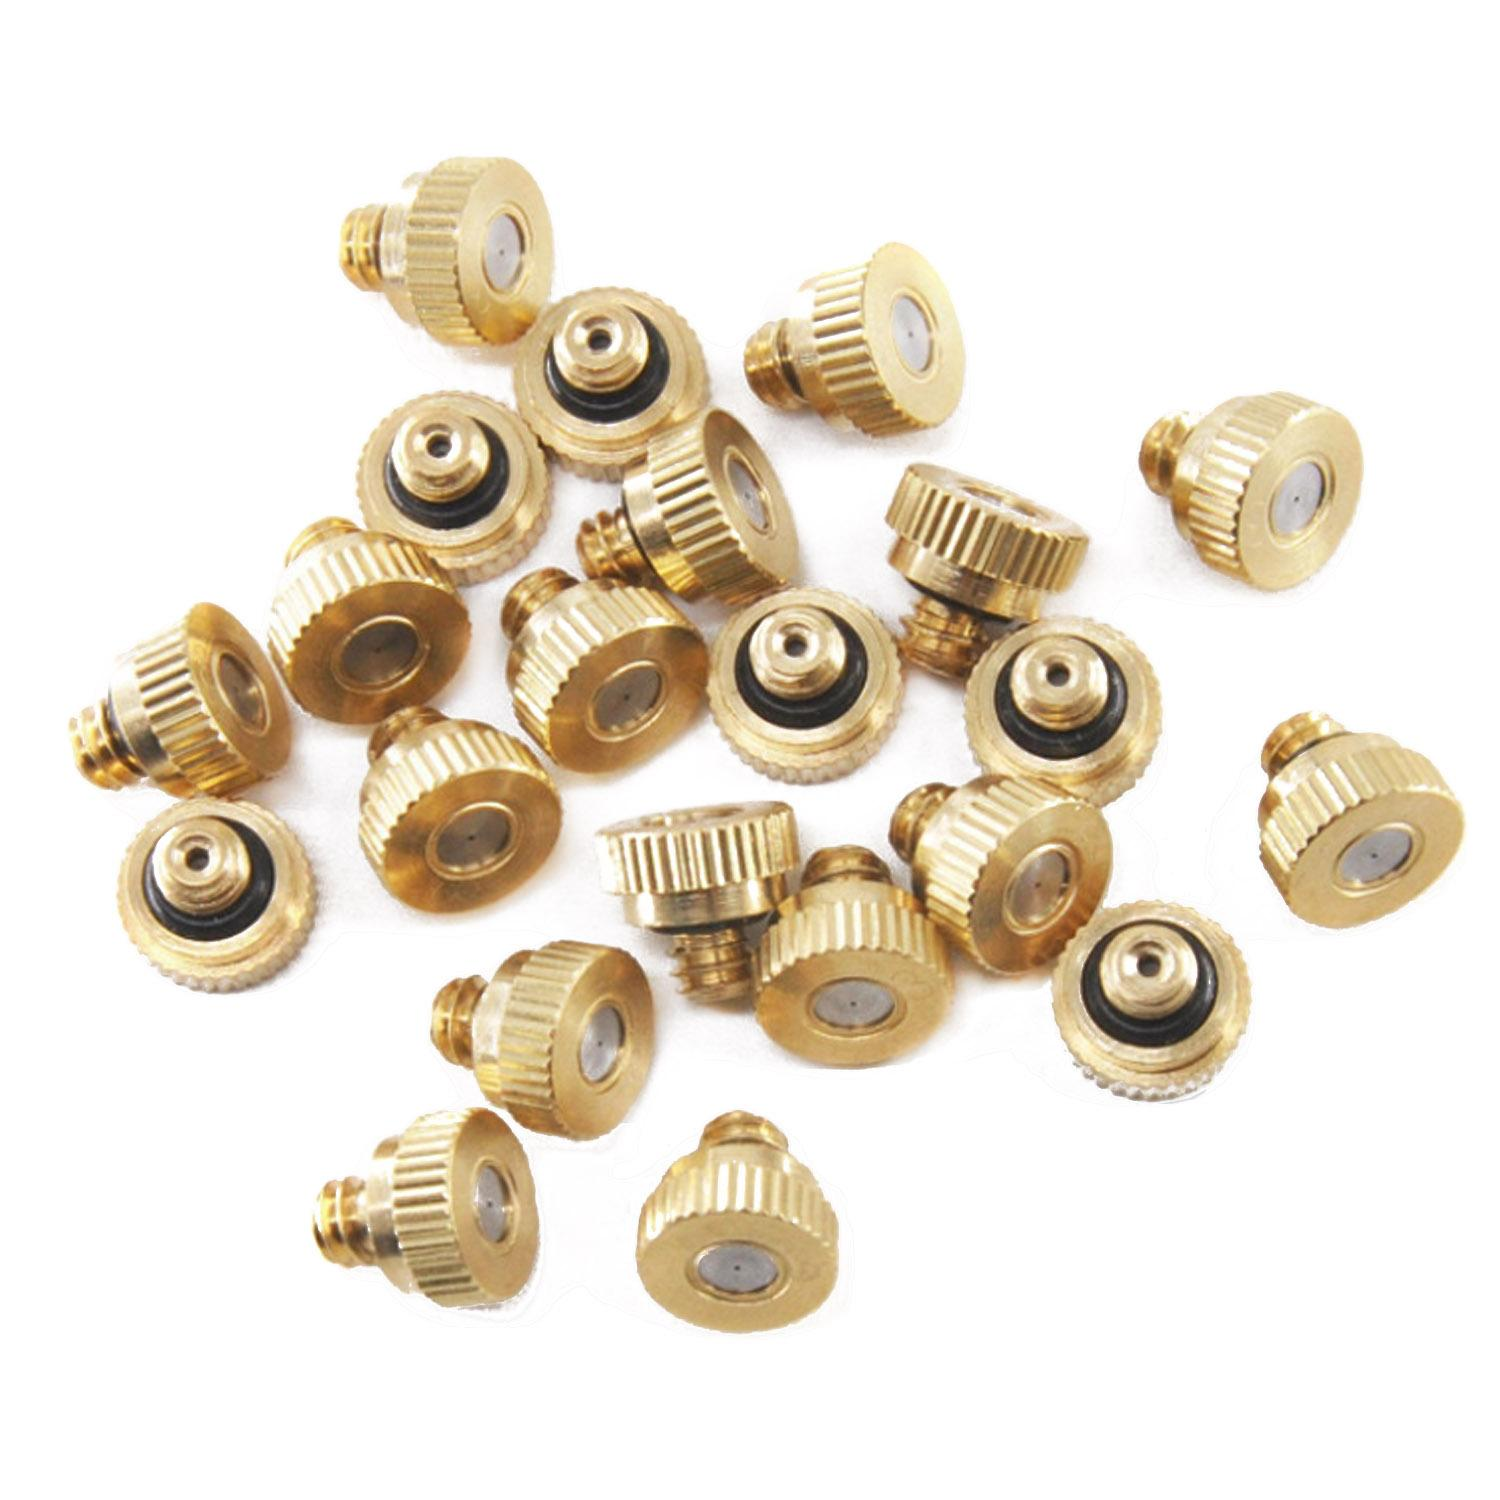 20 PCS 0.3mm Brass Misting Nozzles Atomizing Spray Mister Nozzle for Outdoor Cooling System -